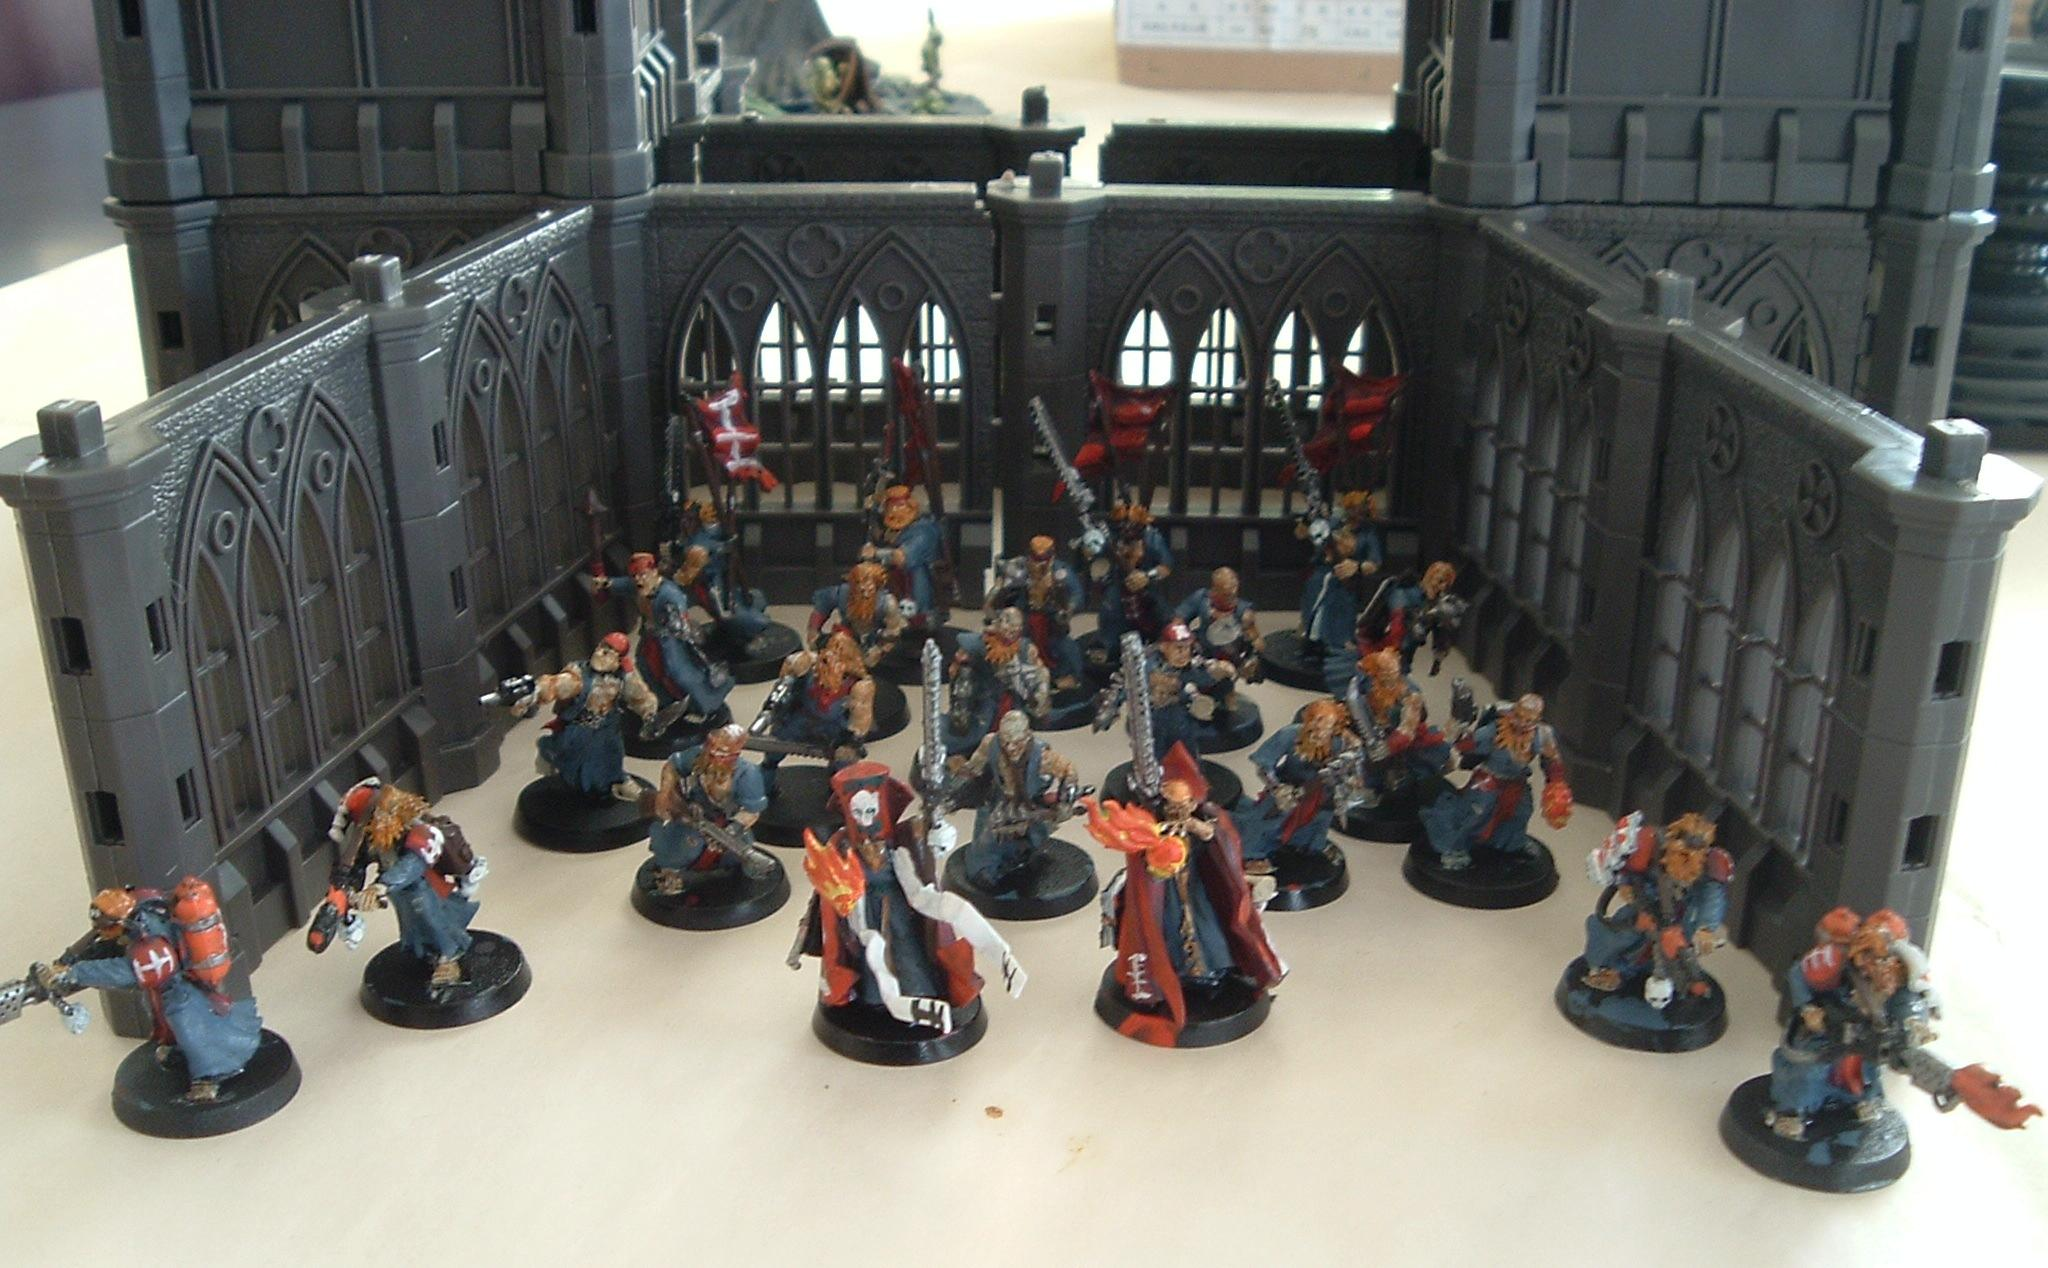 Conversion, Flagellents, Frateris Militia, Group, Imperial Guard, Inquisition, Warhammer 40,000, Zealots